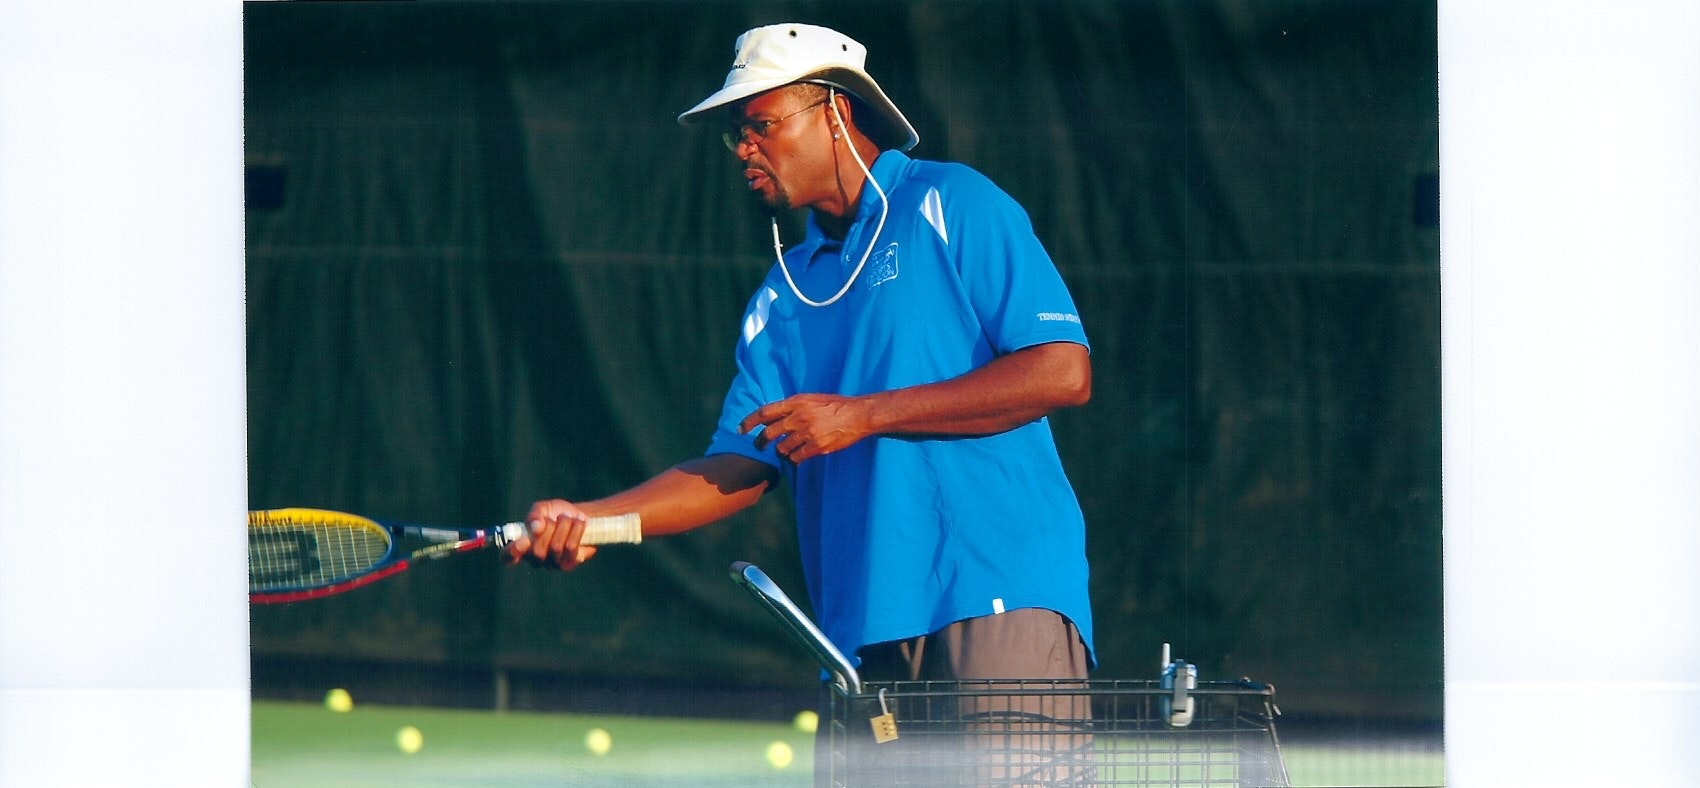 Peter T. teaches tennis lessons in Washington , DC